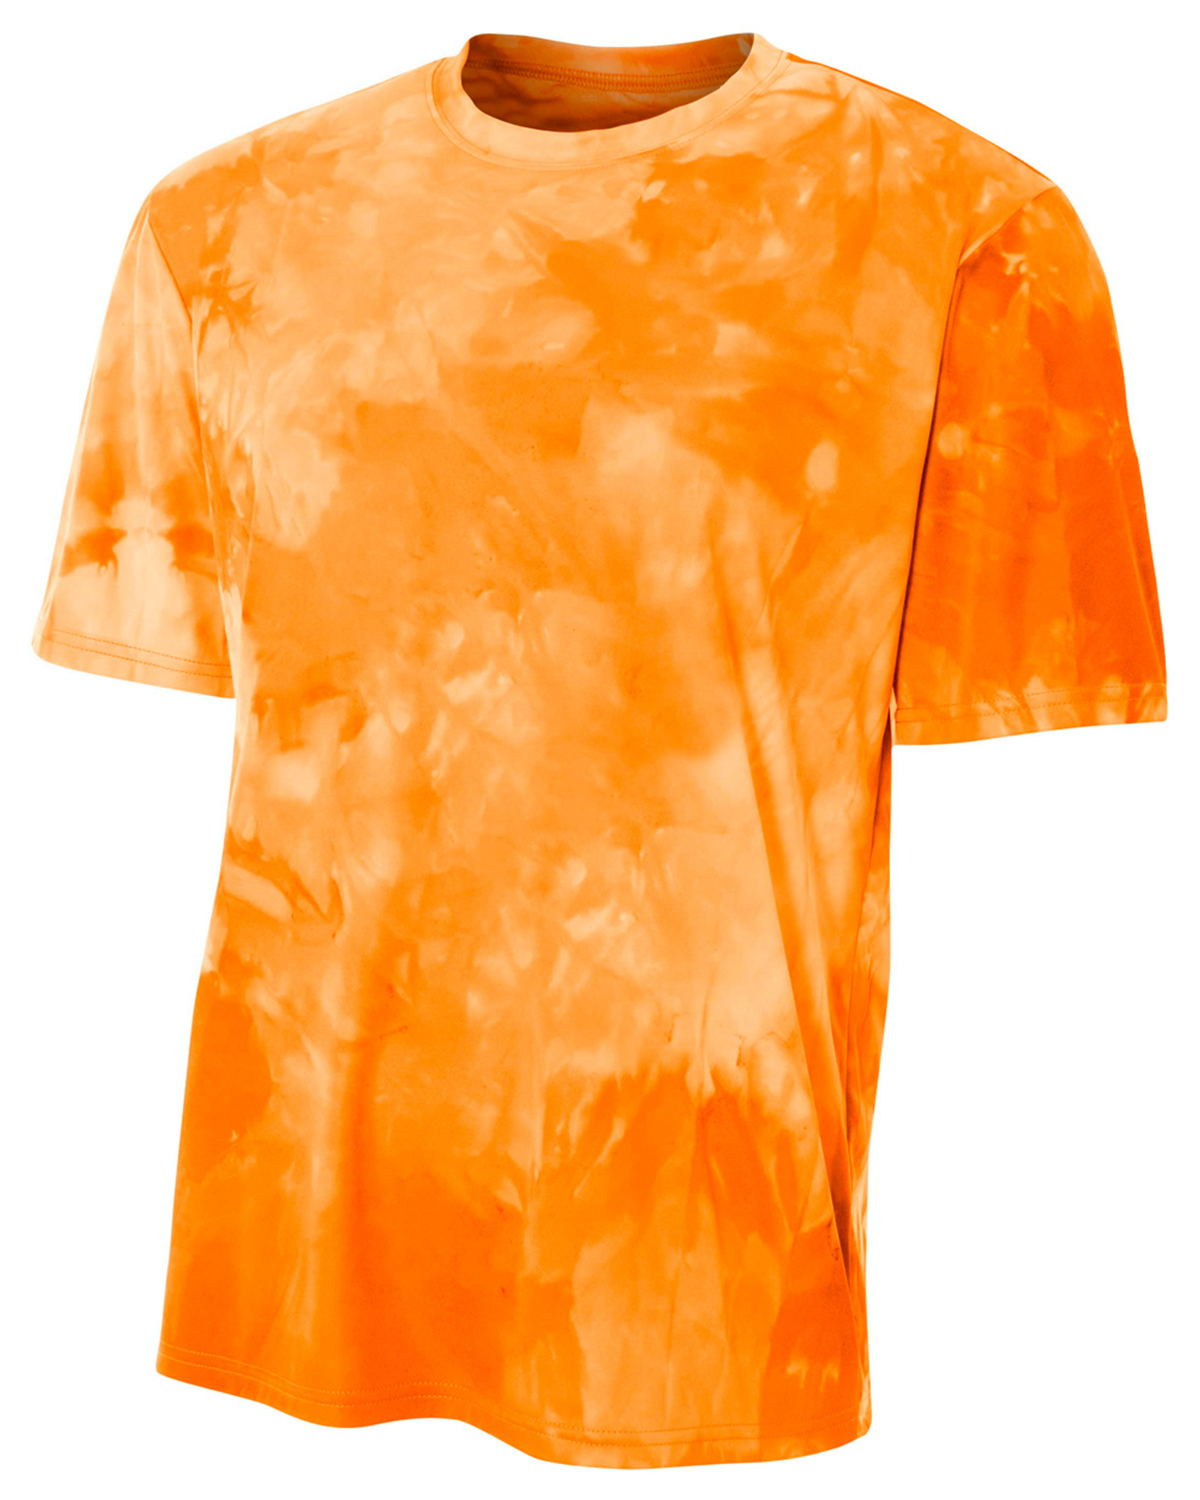 A4 - A4N3295 Men's Cloud Dye Tech T